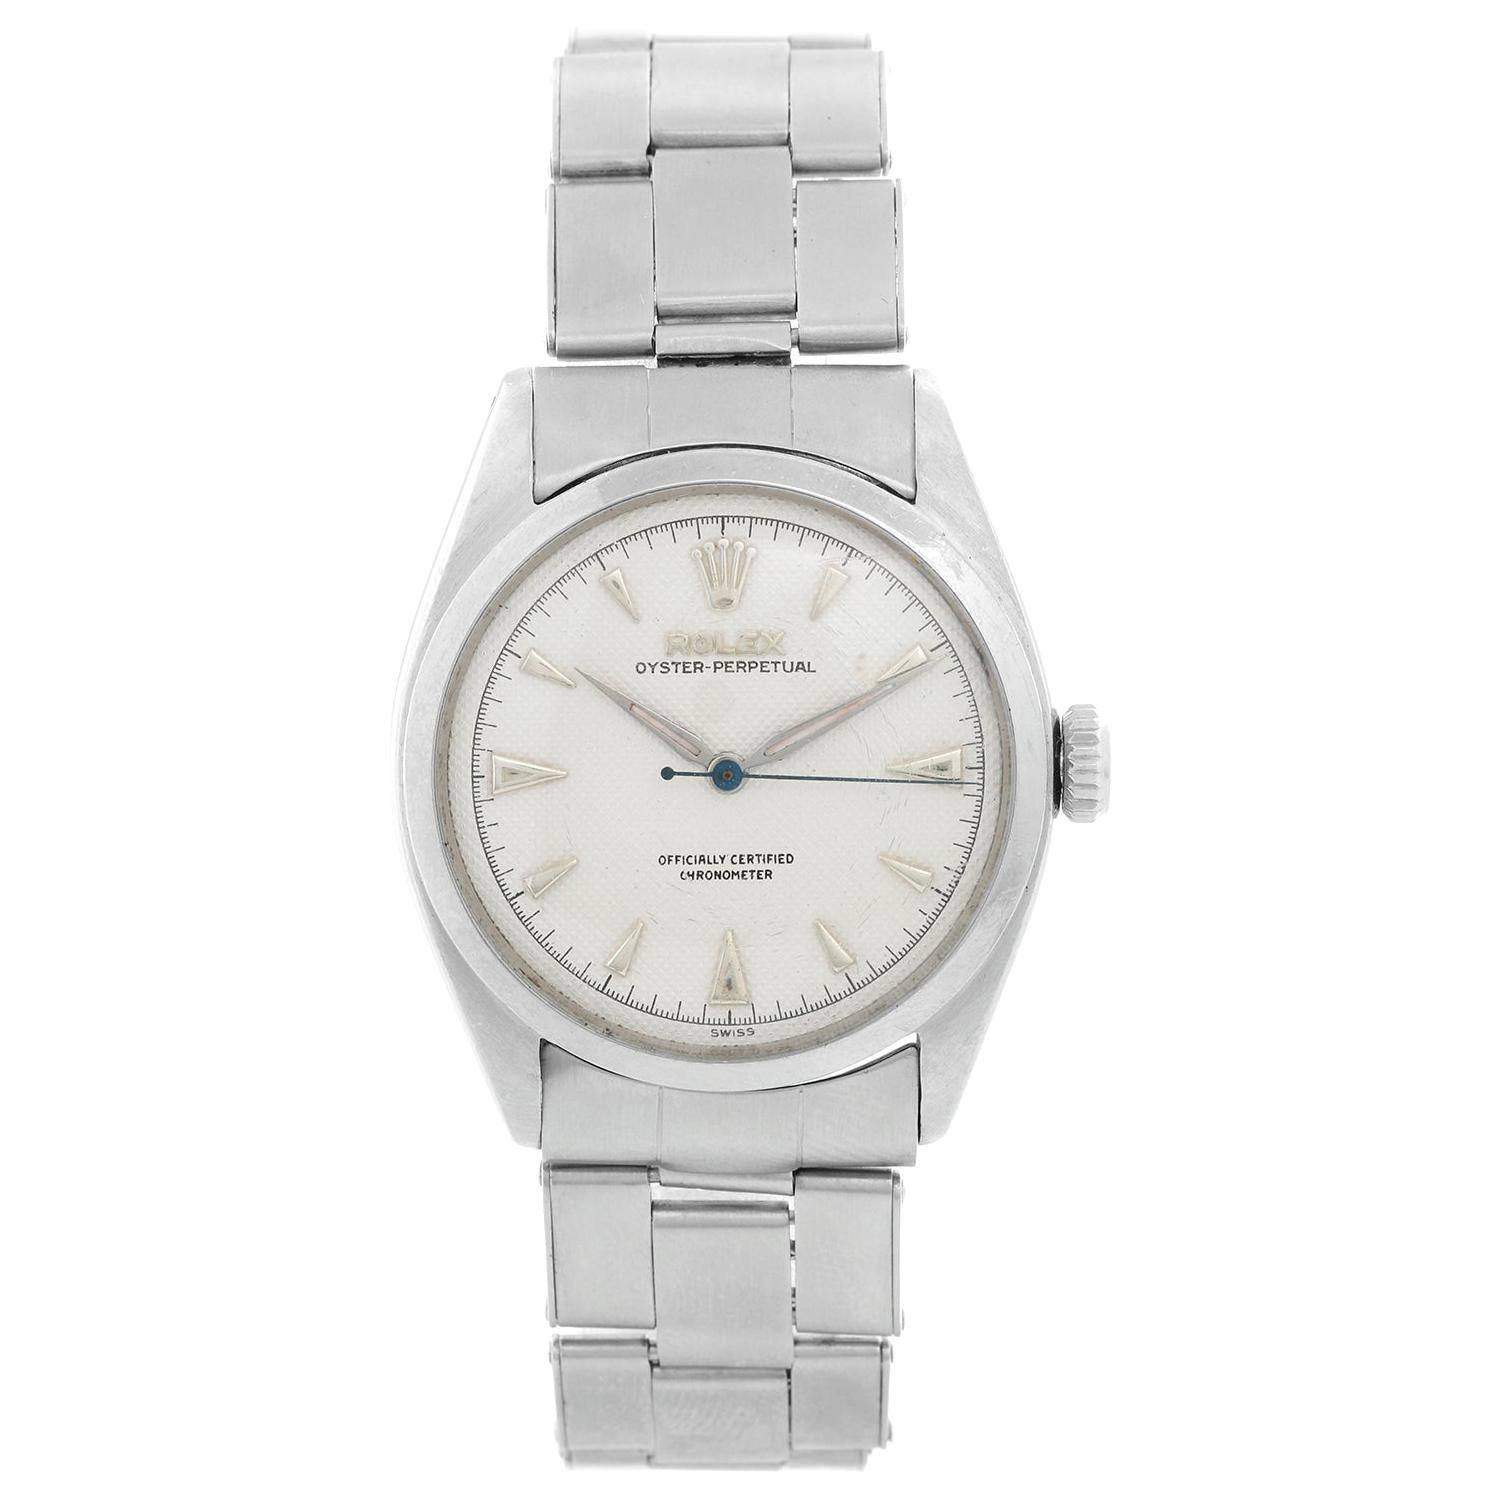 Vintage Rolex Oyster Perpetual Stainless Steel Men's Watch Ref. 6084